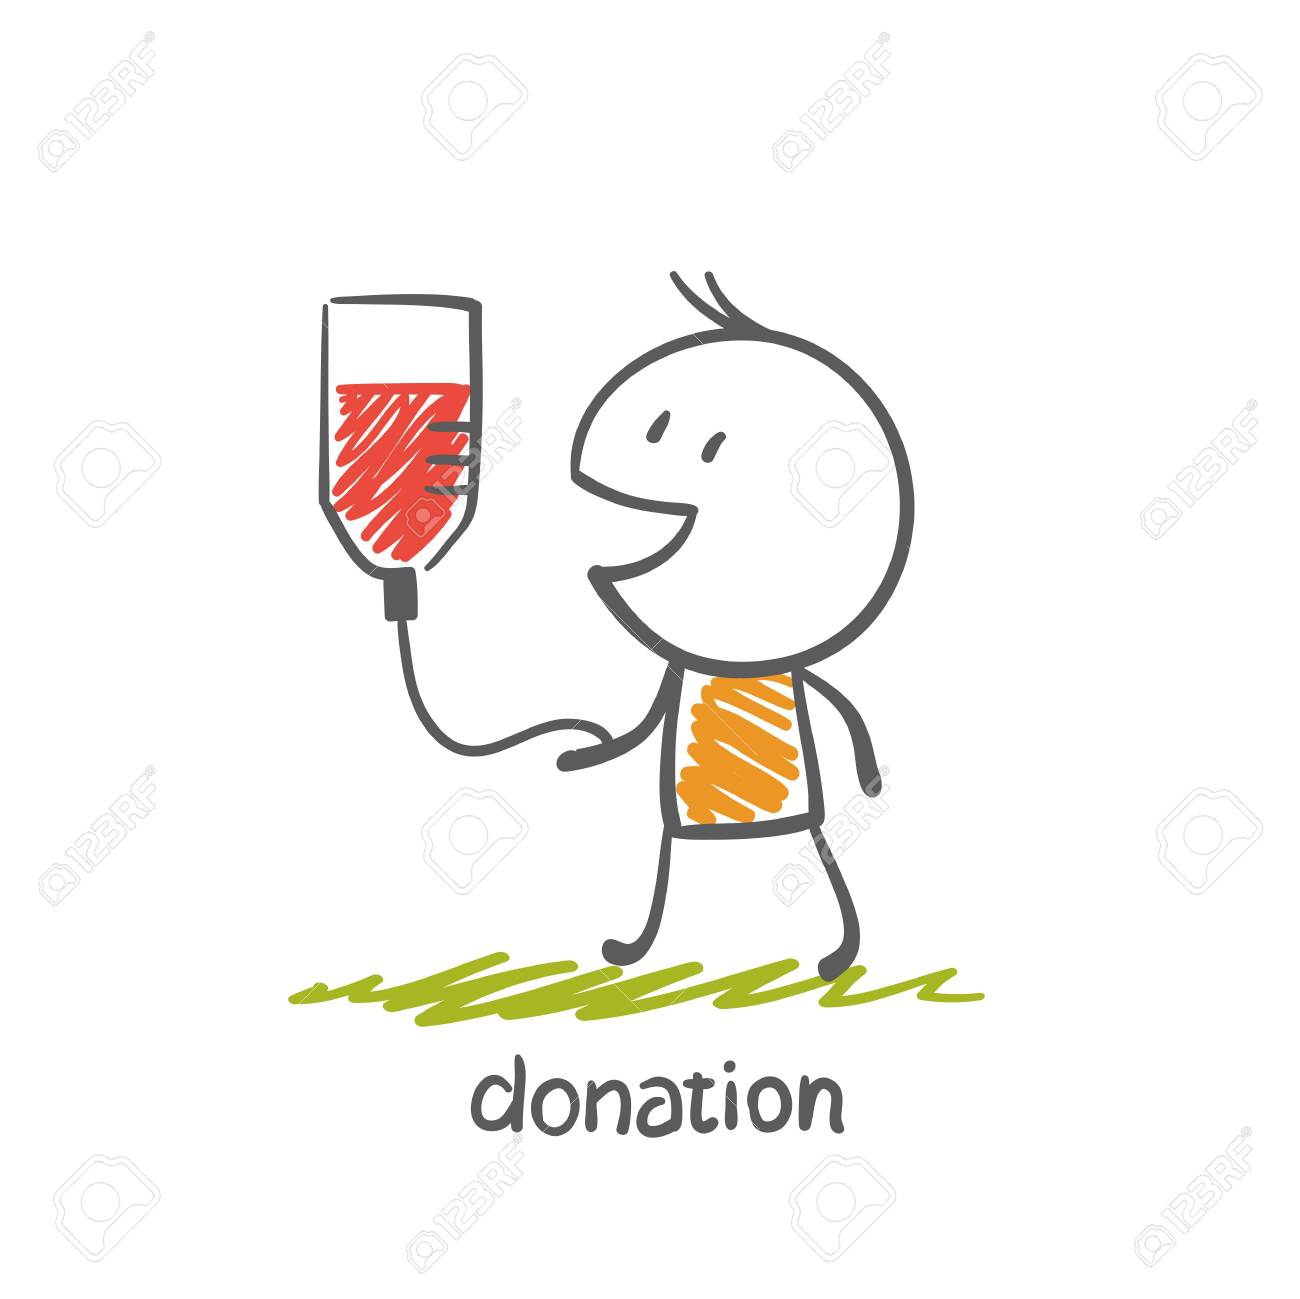 persons engaged in the donation illustration - 36067802